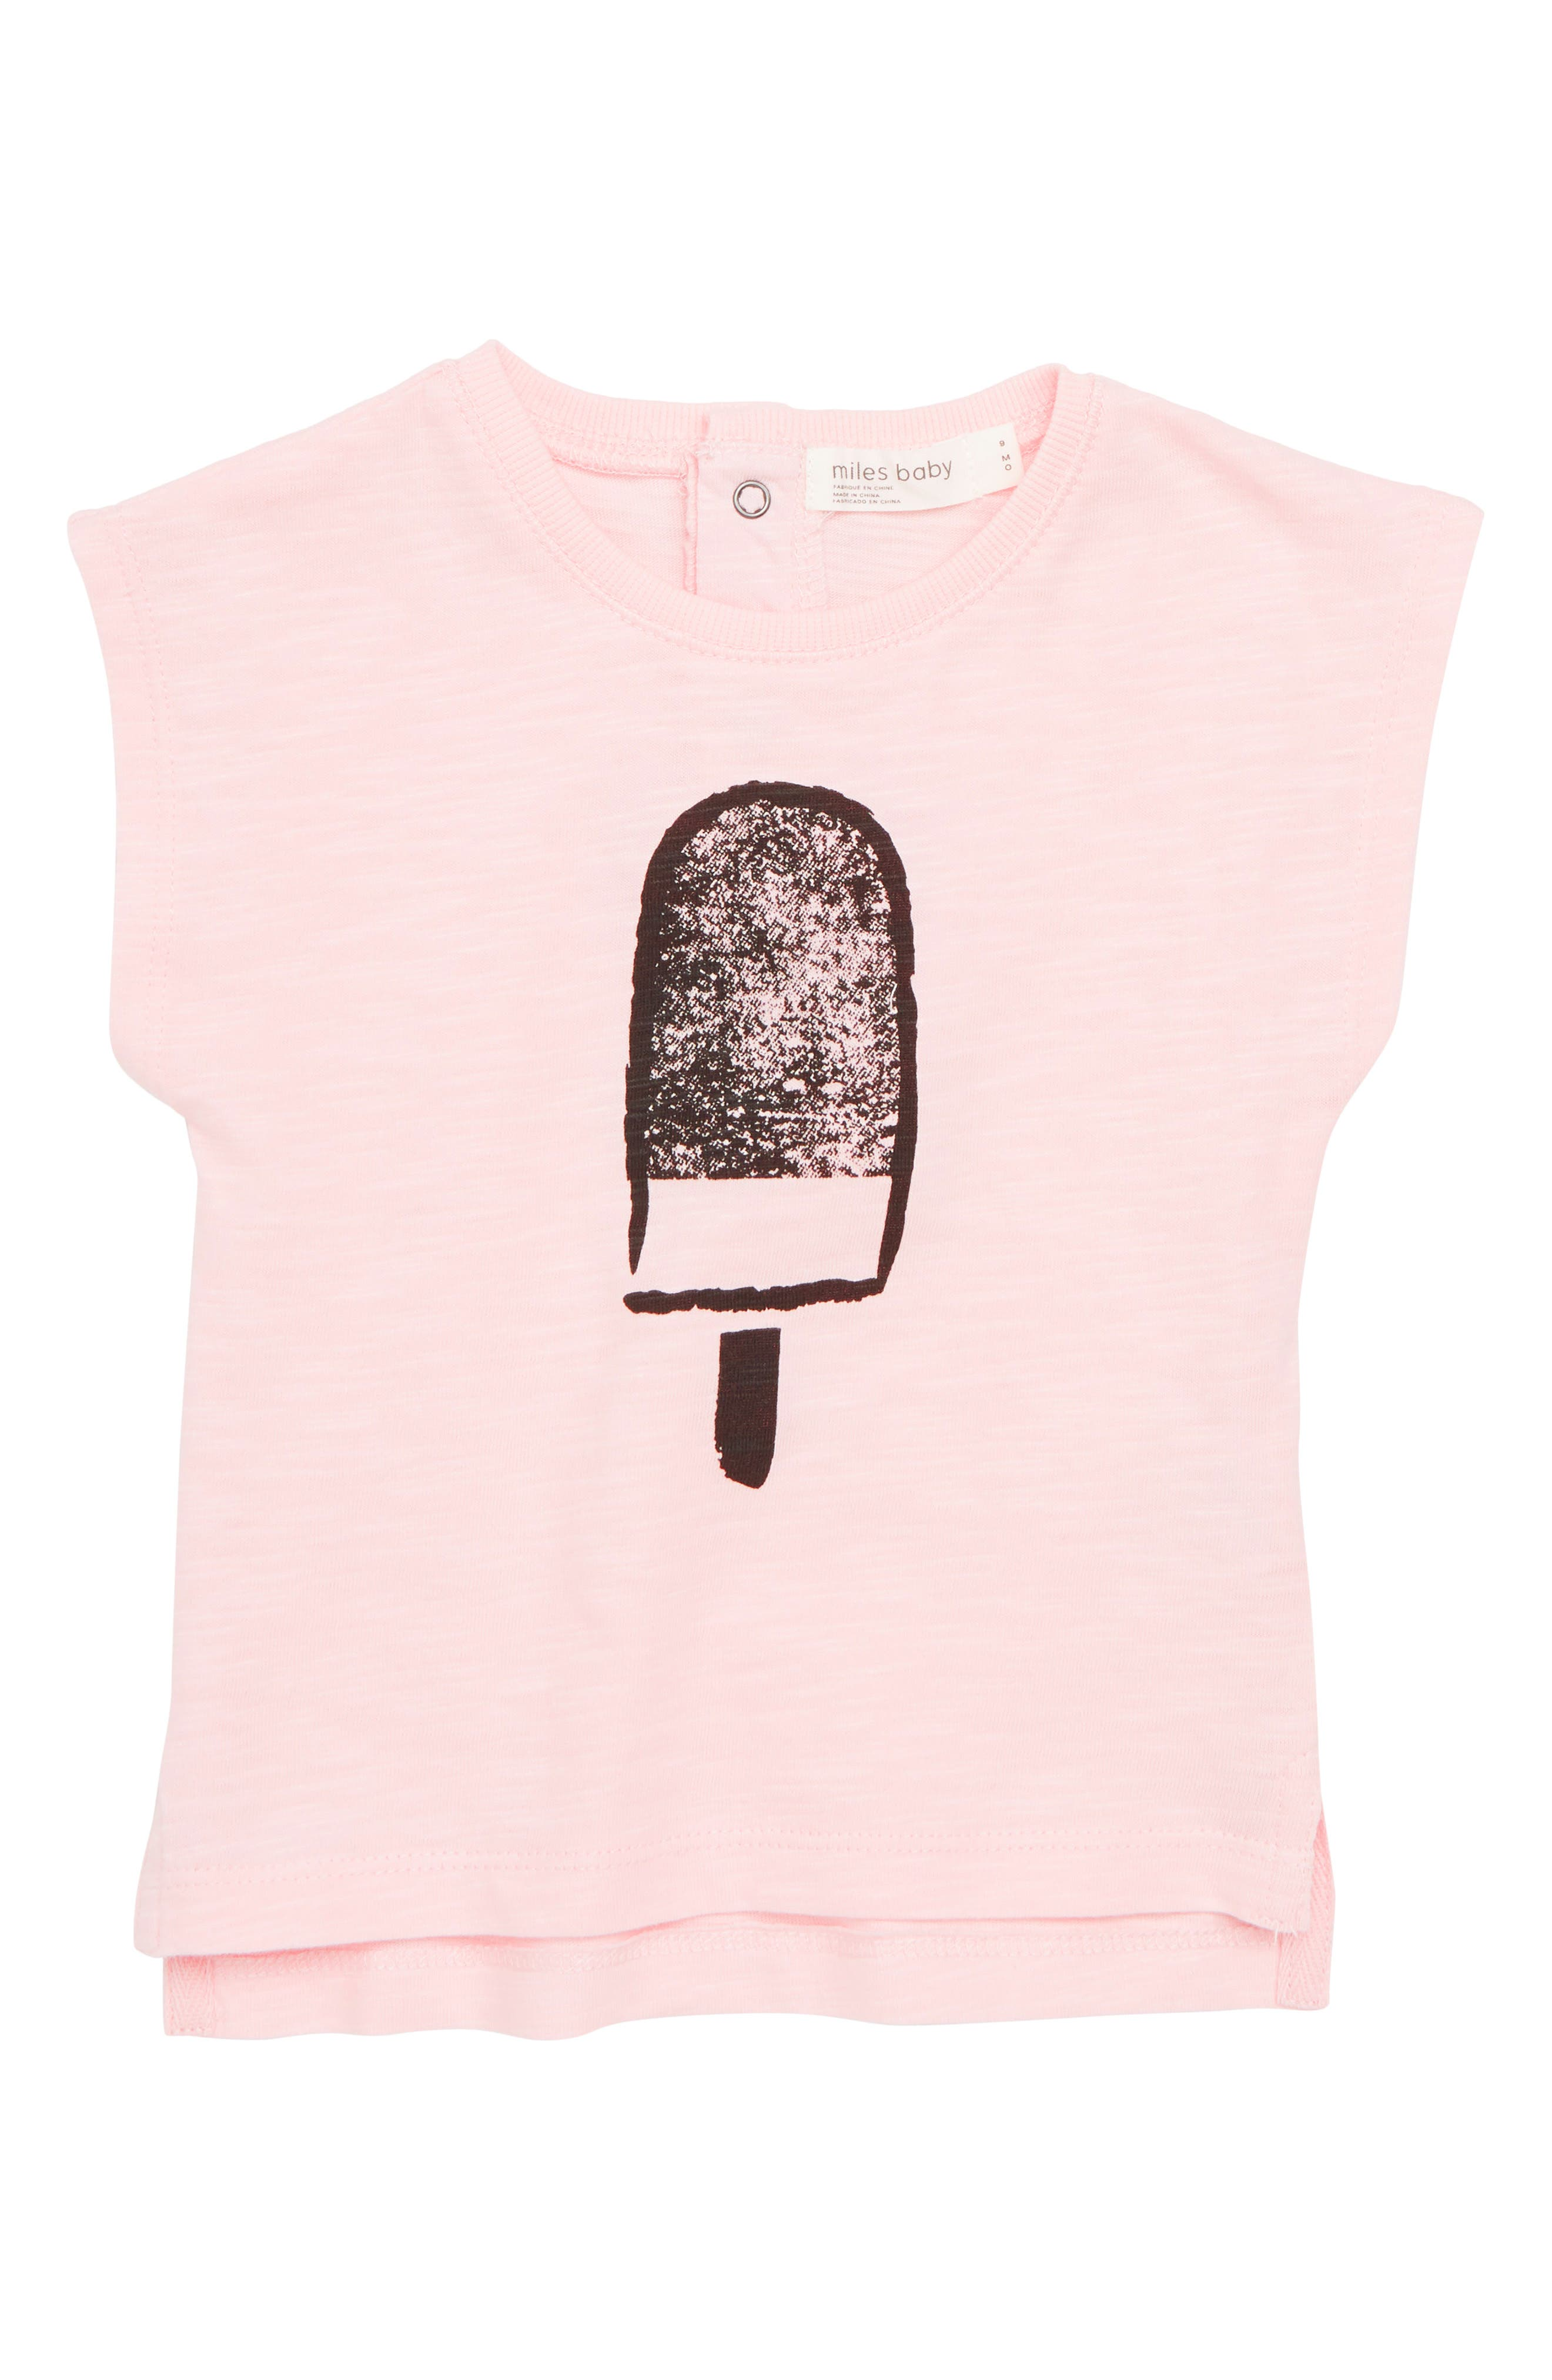 MILES BABY Graphic Tee, Main, color, 680